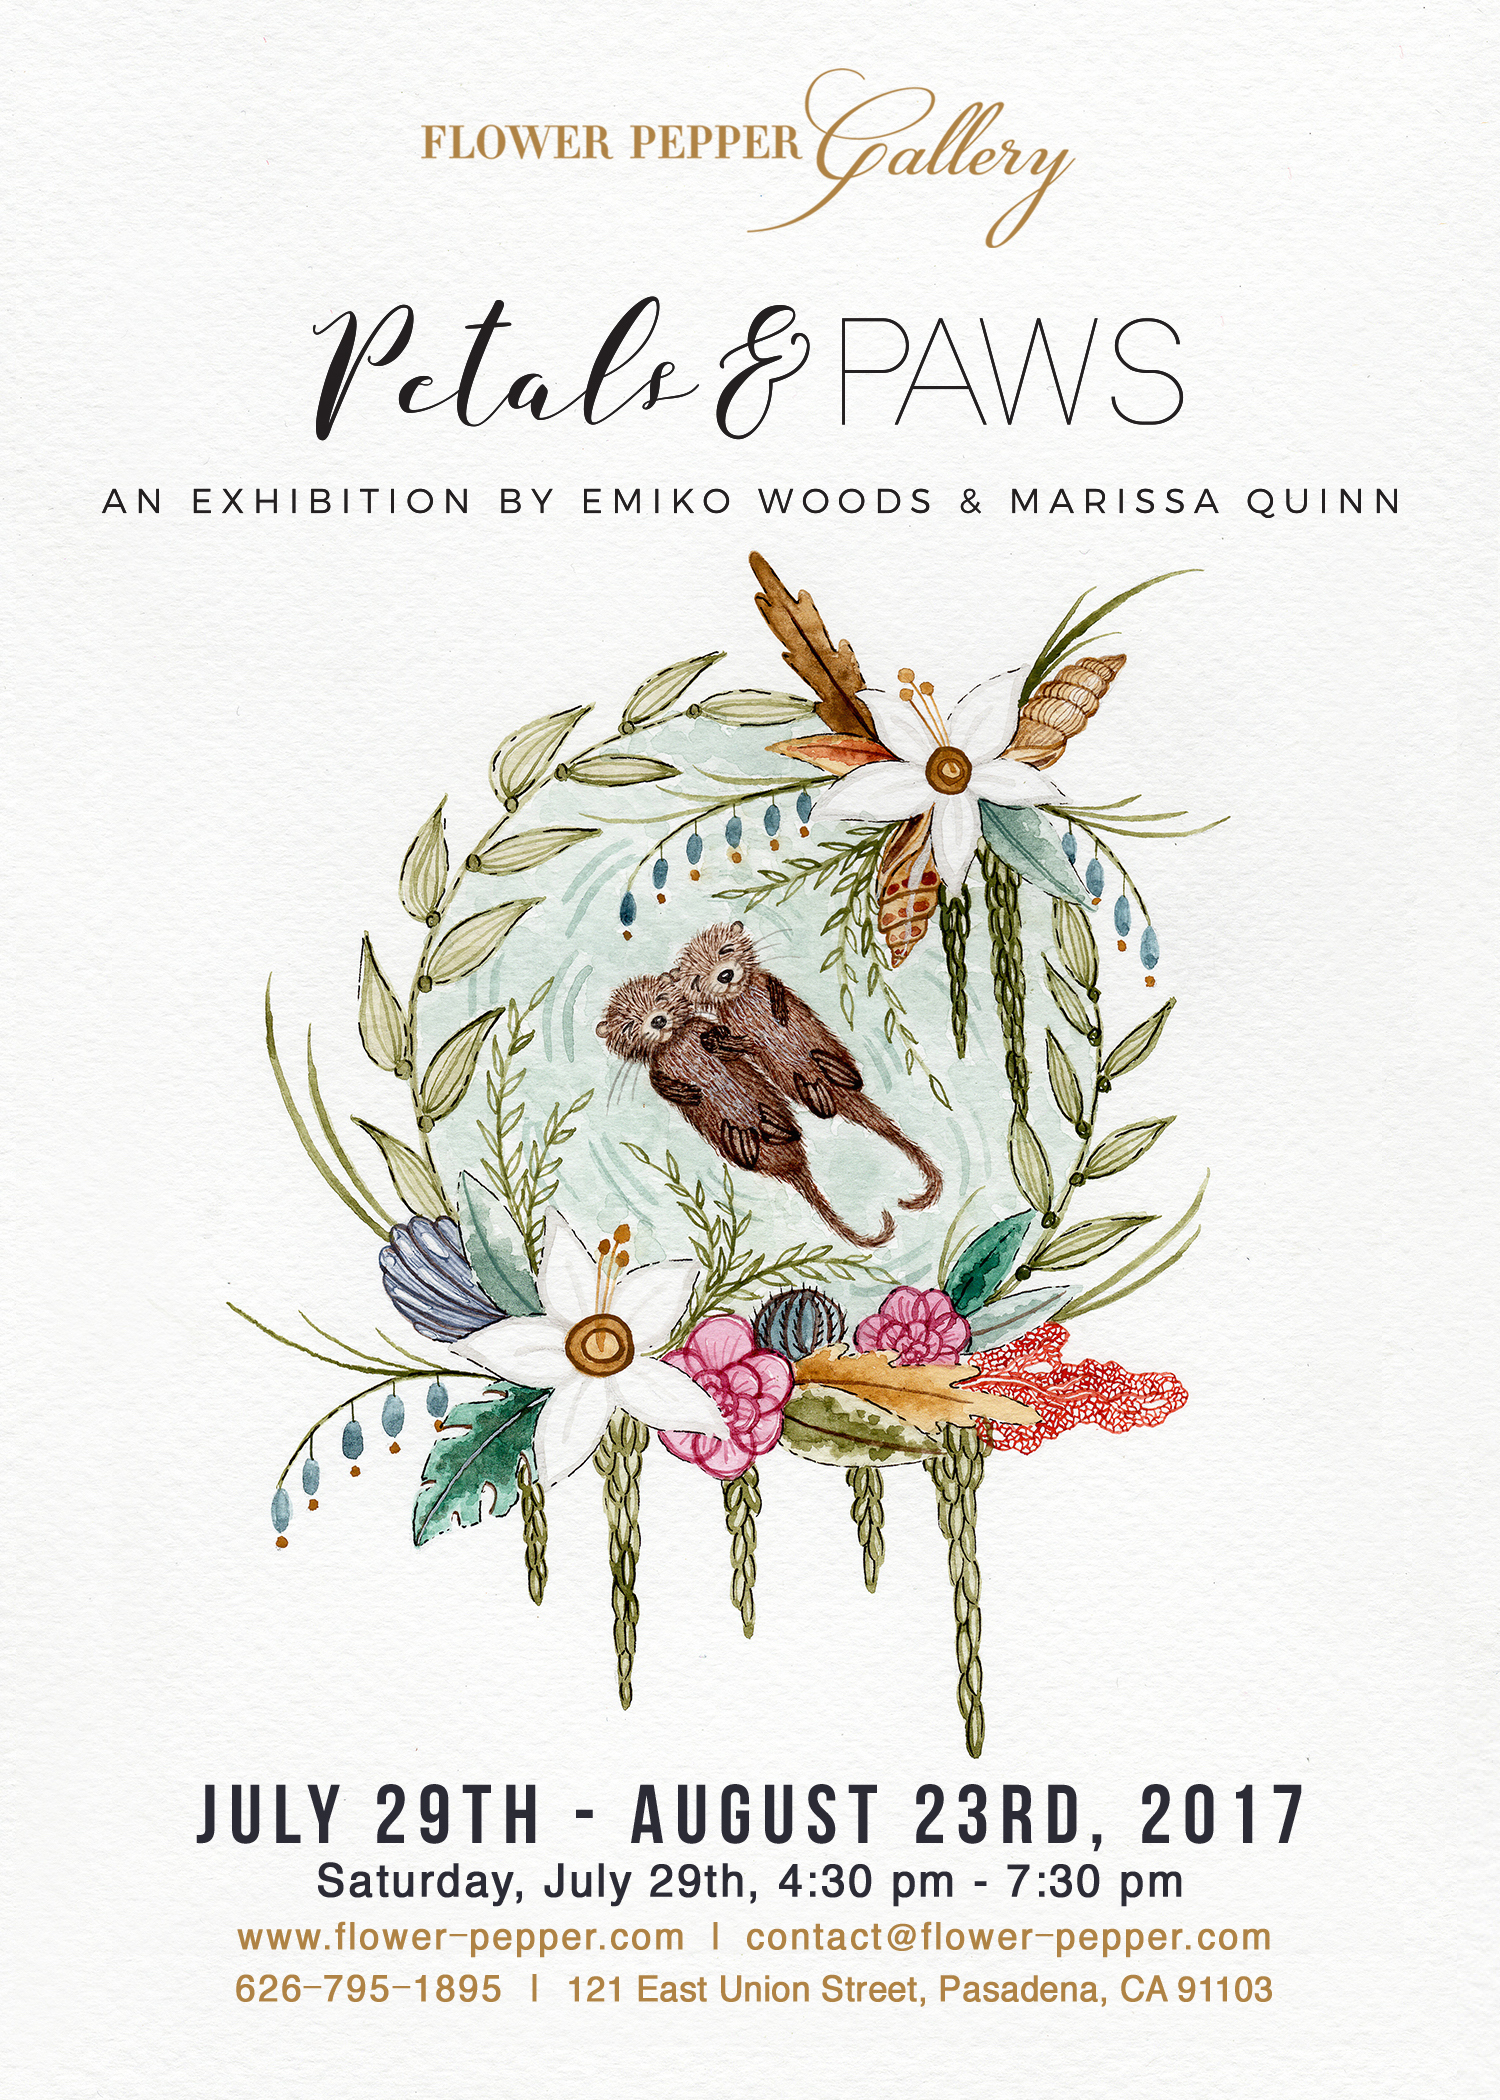 Petals & Paws: An Exhibition by Emiko Woods & Marissa Quinn